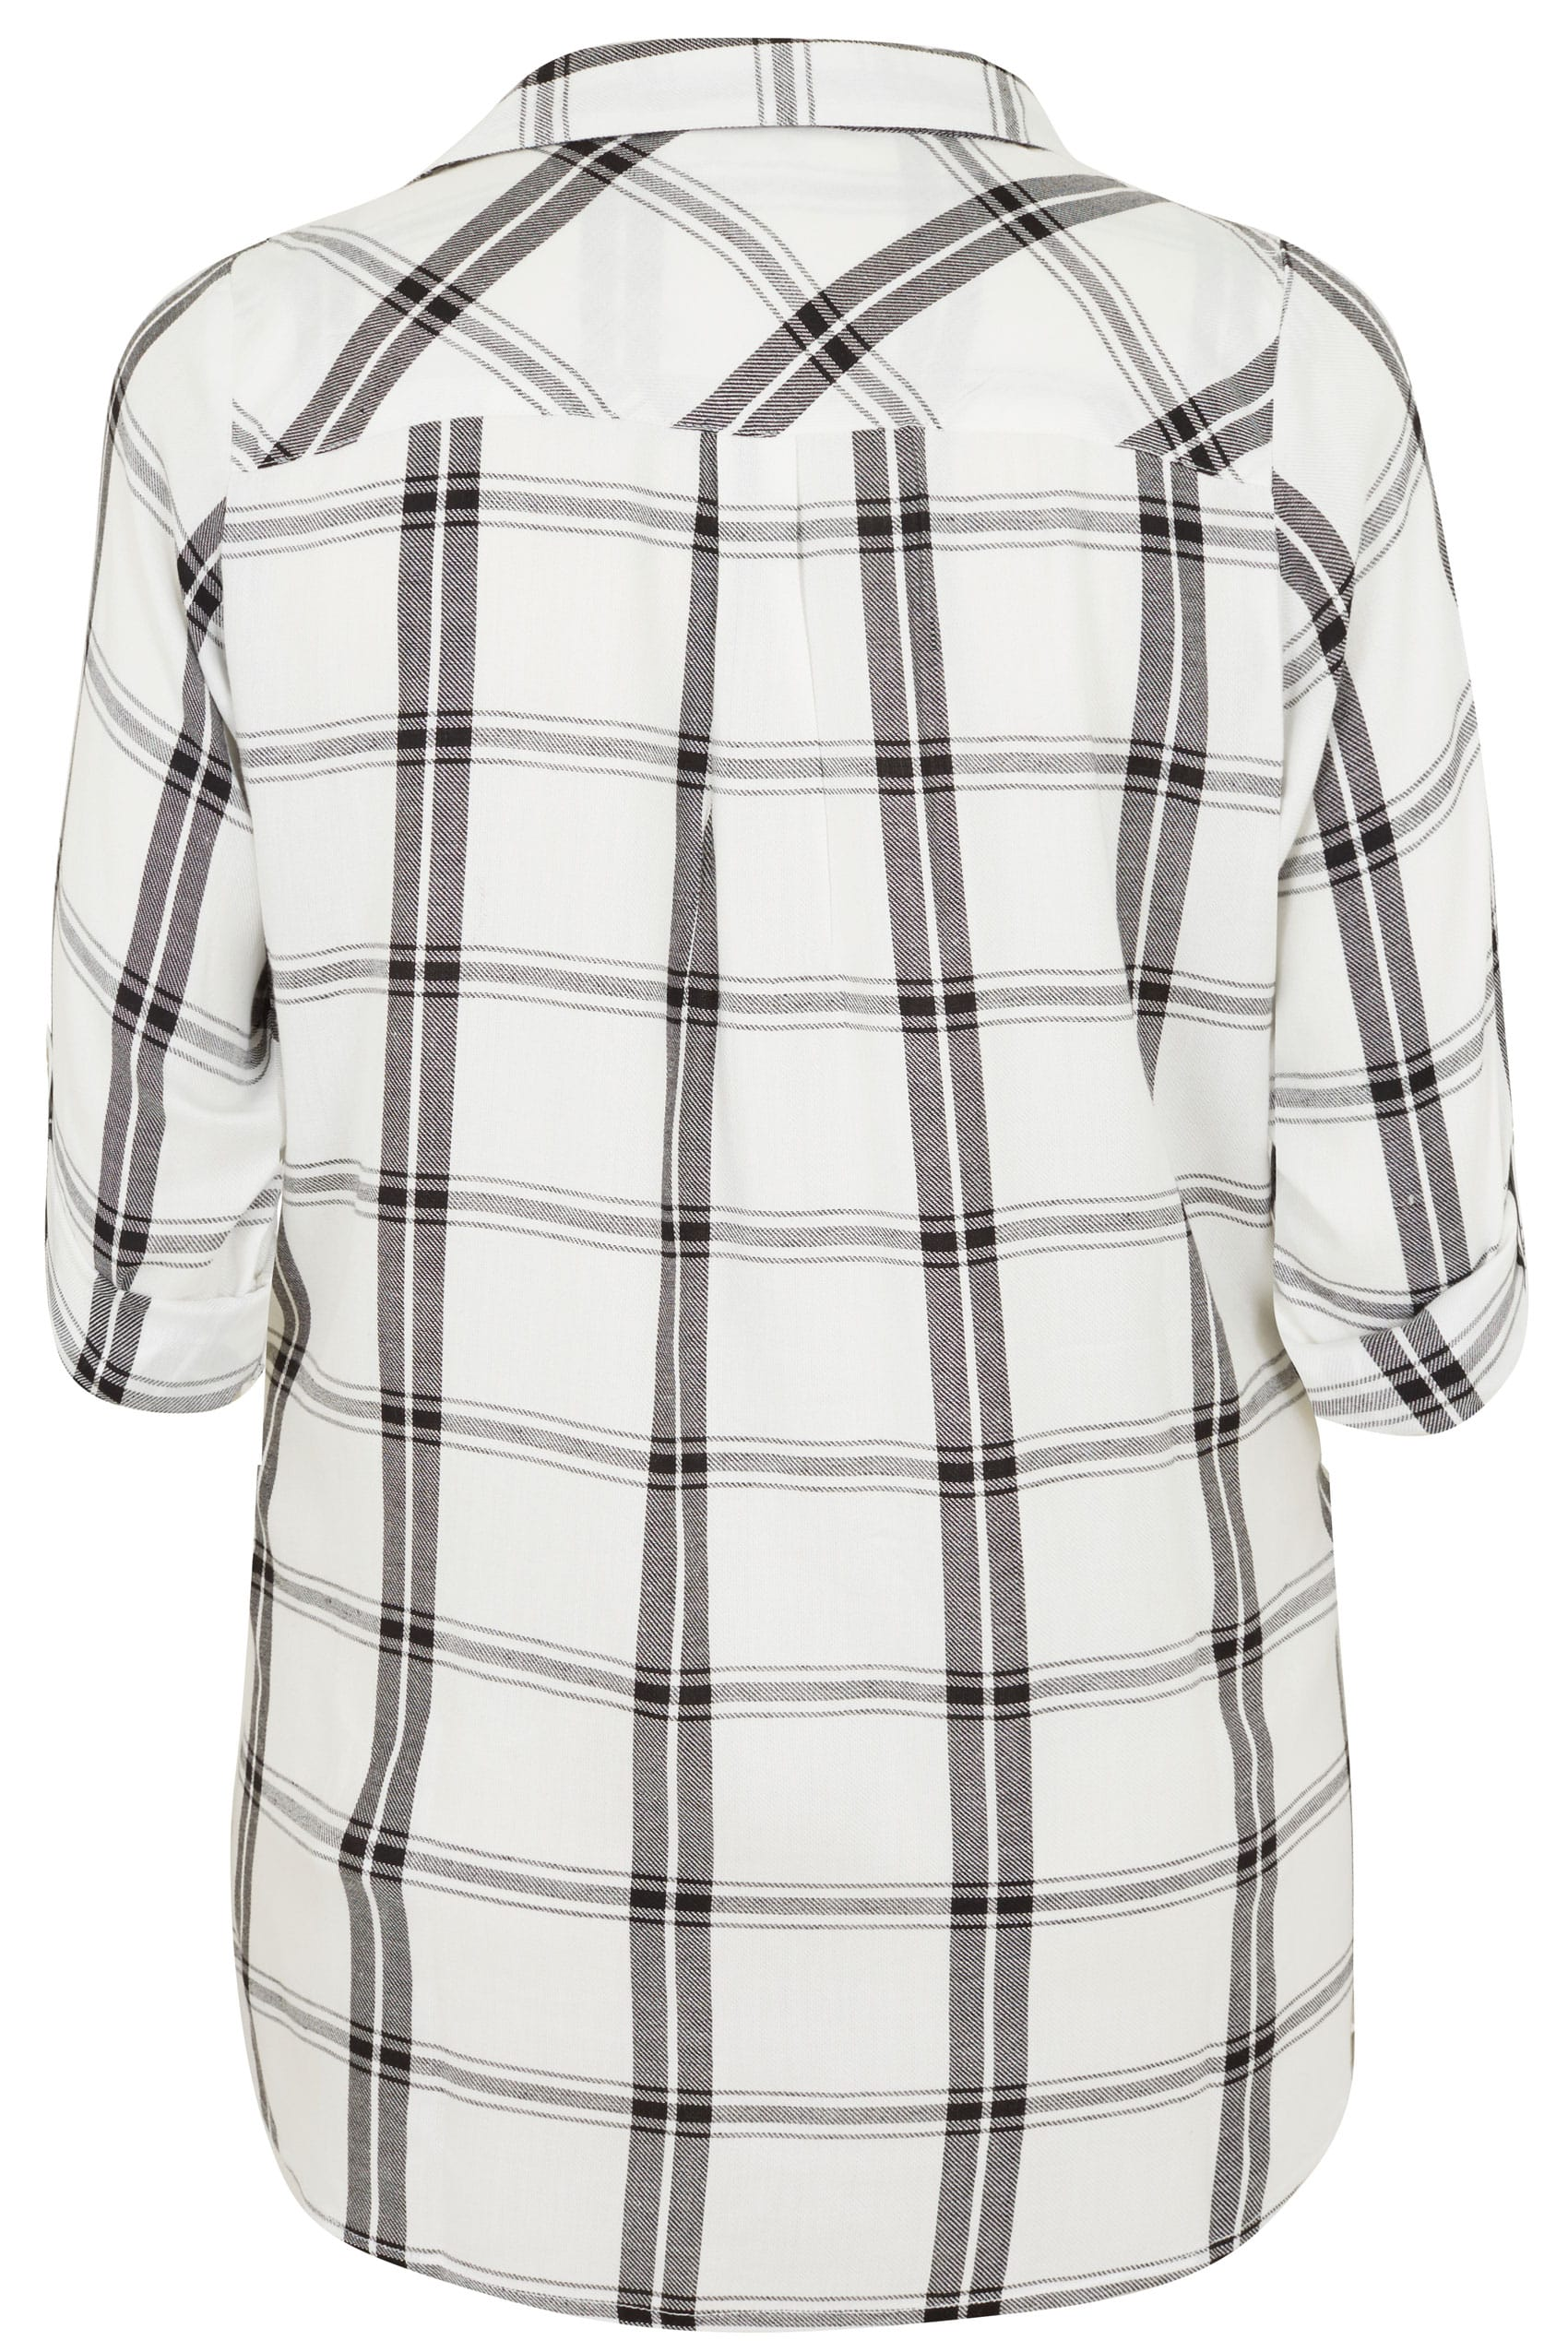 ivory black oversized wide checked shirt with v neck plus size 16 to 36. Black Bedroom Furniture Sets. Home Design Ideas